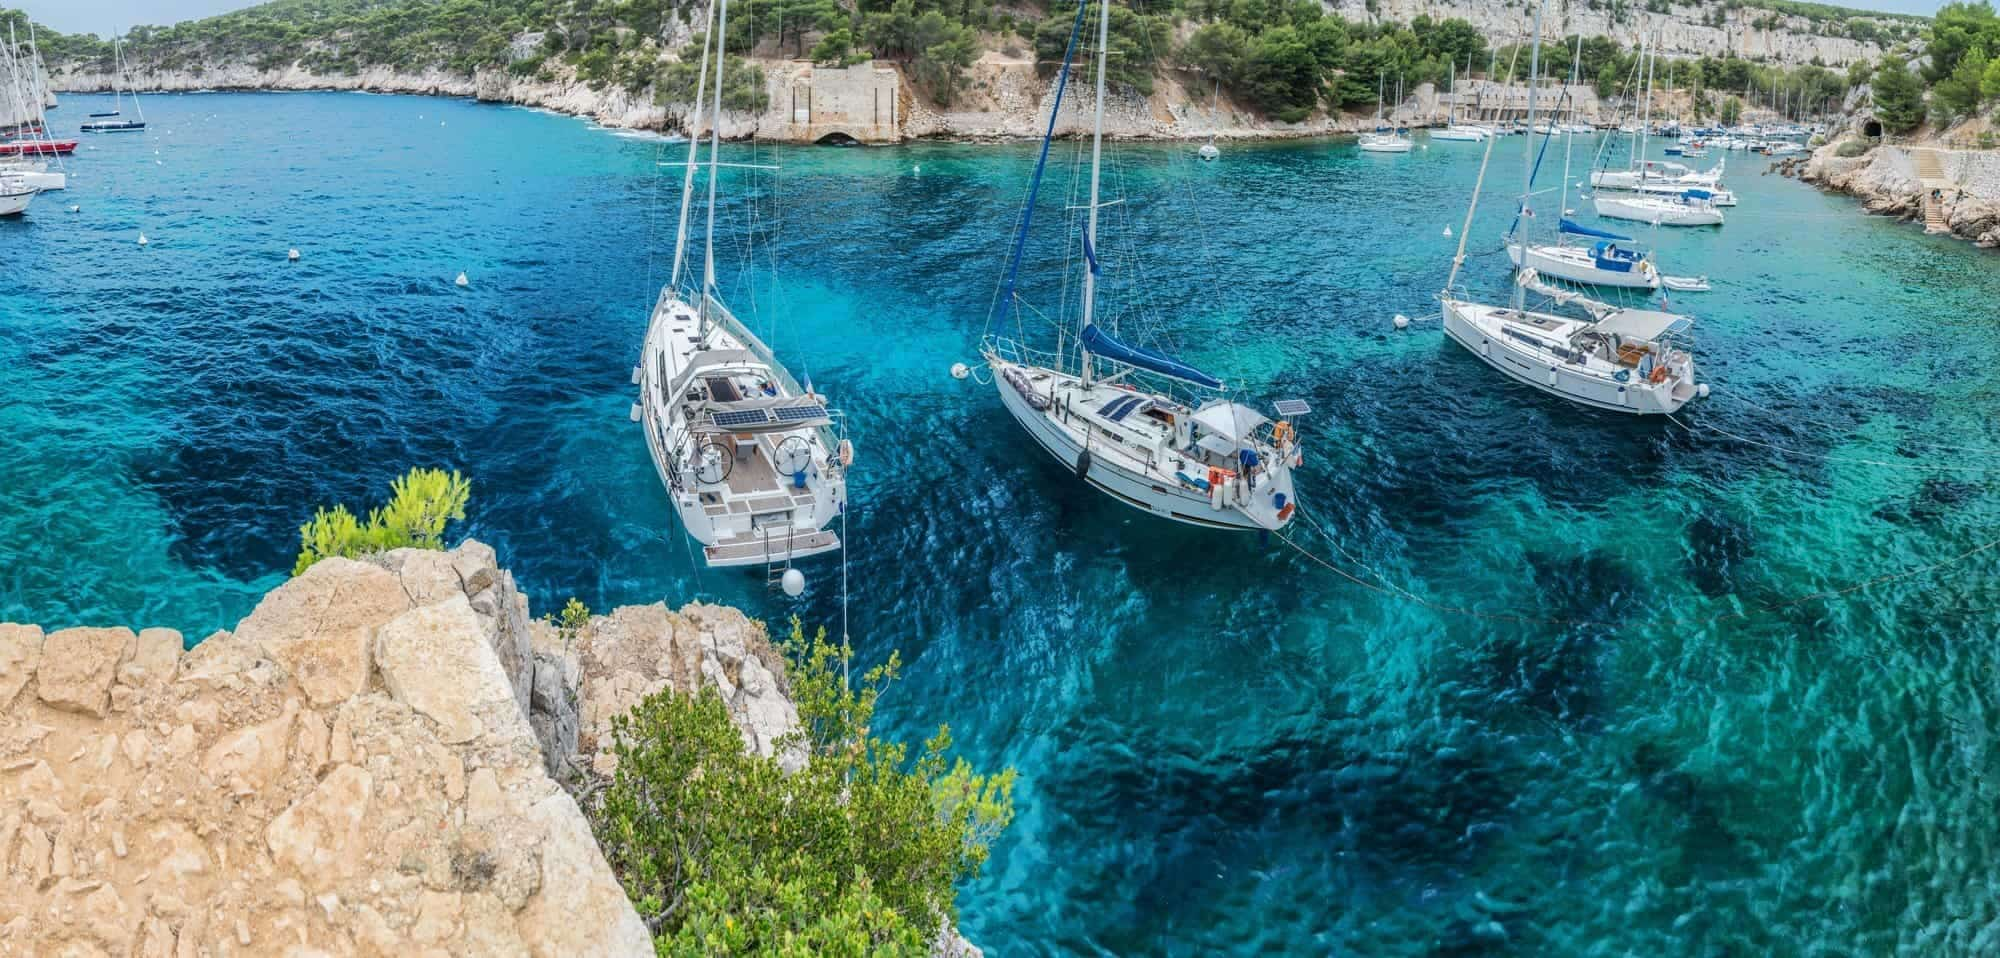 Sailing, Port-Miou calanque in Cassis. France. '